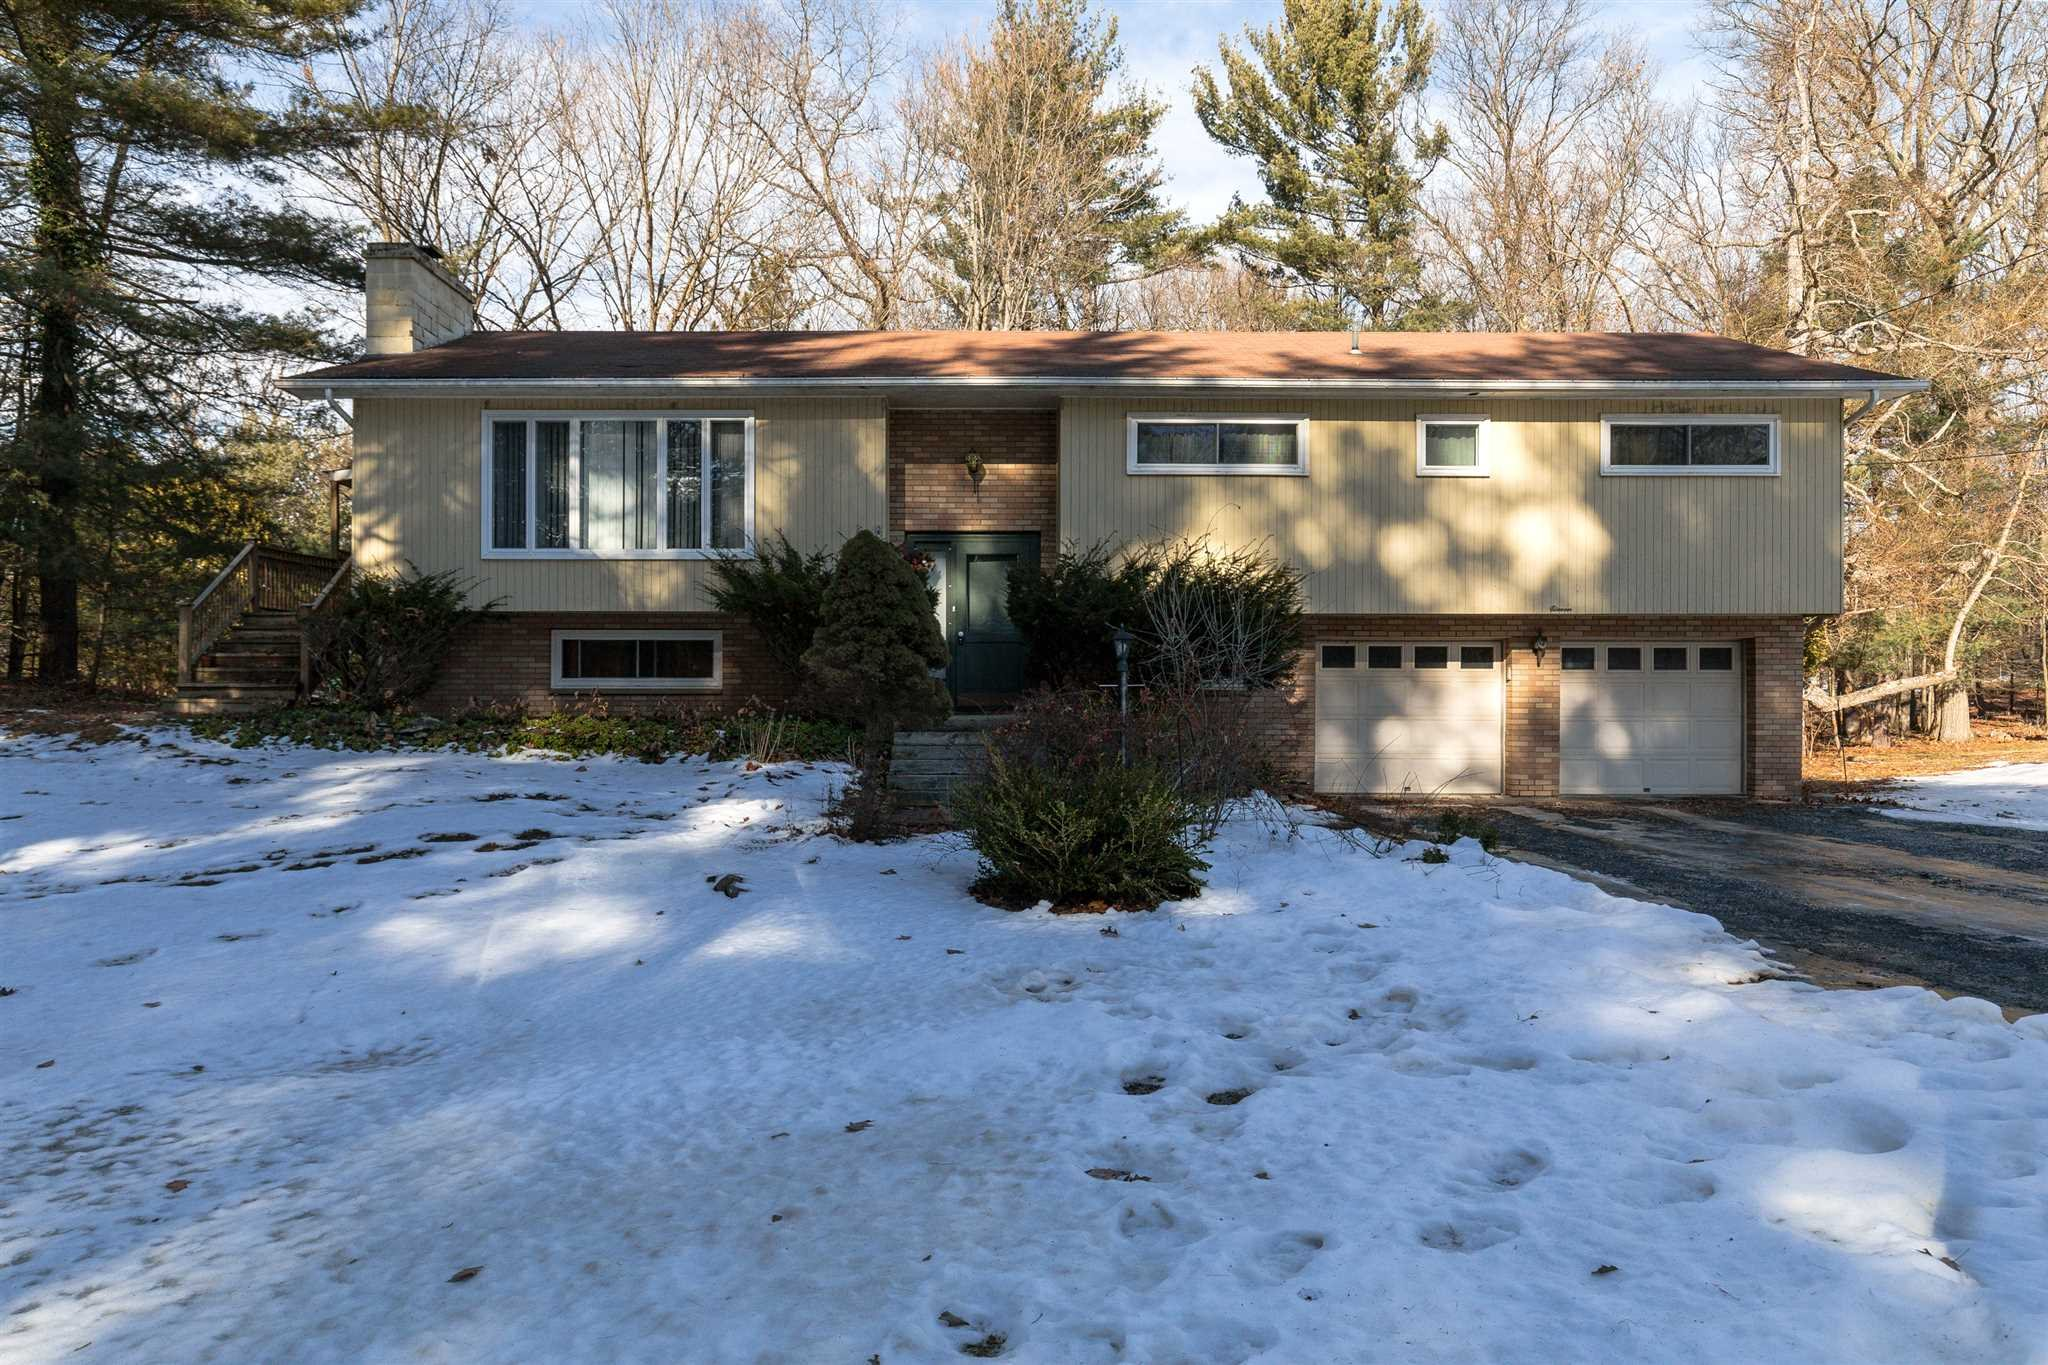 Single Family Home for Sale at 11 SPRUCE Road 11 SPRUCE Road Hyde Park, New York 12538 United States